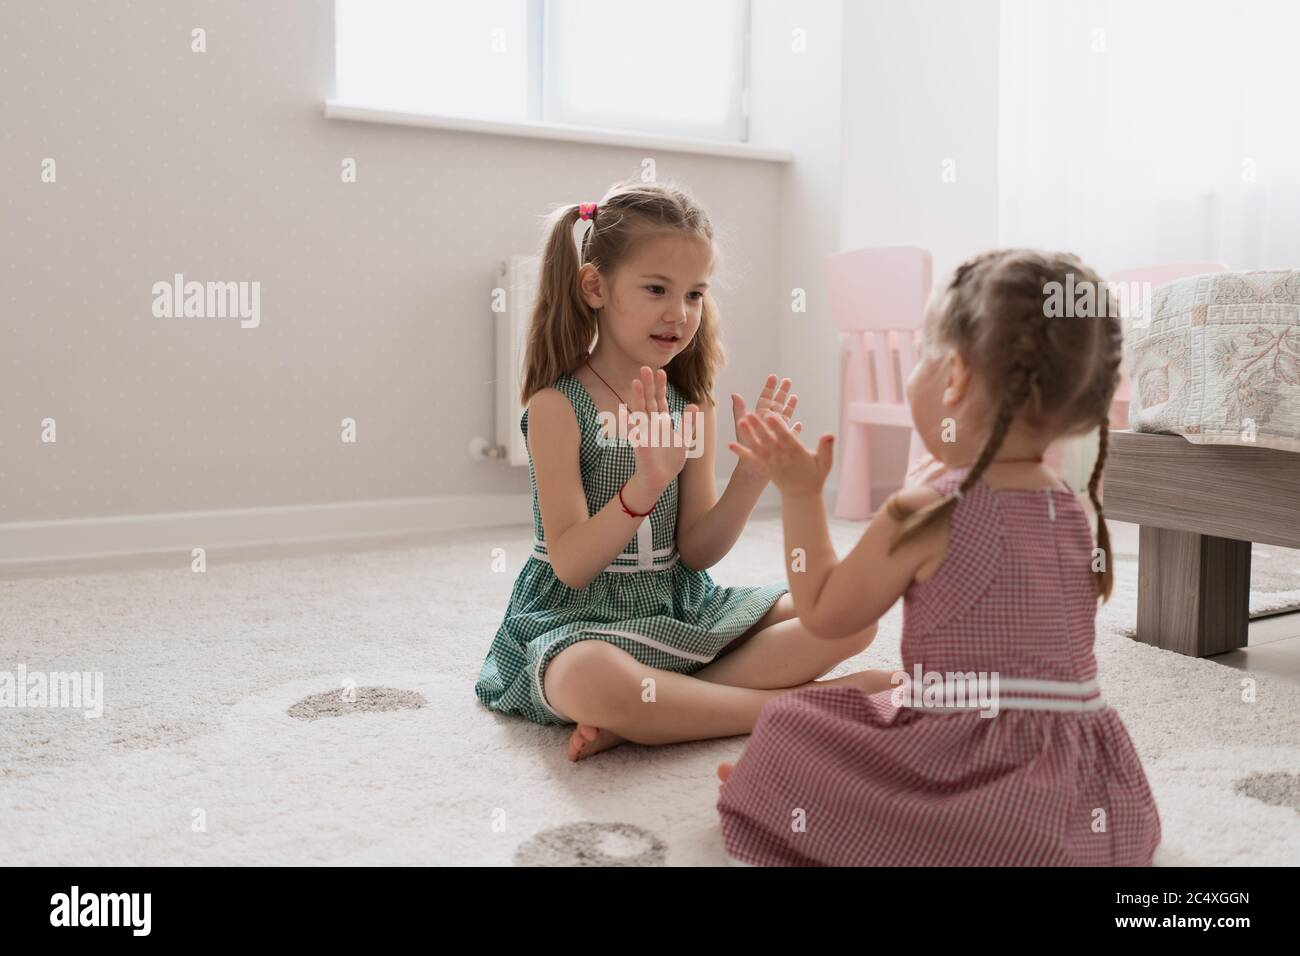 Cute little sisters playing together sitting on the carpet in identical dresses different colors in a room with lots of light Stock Photo